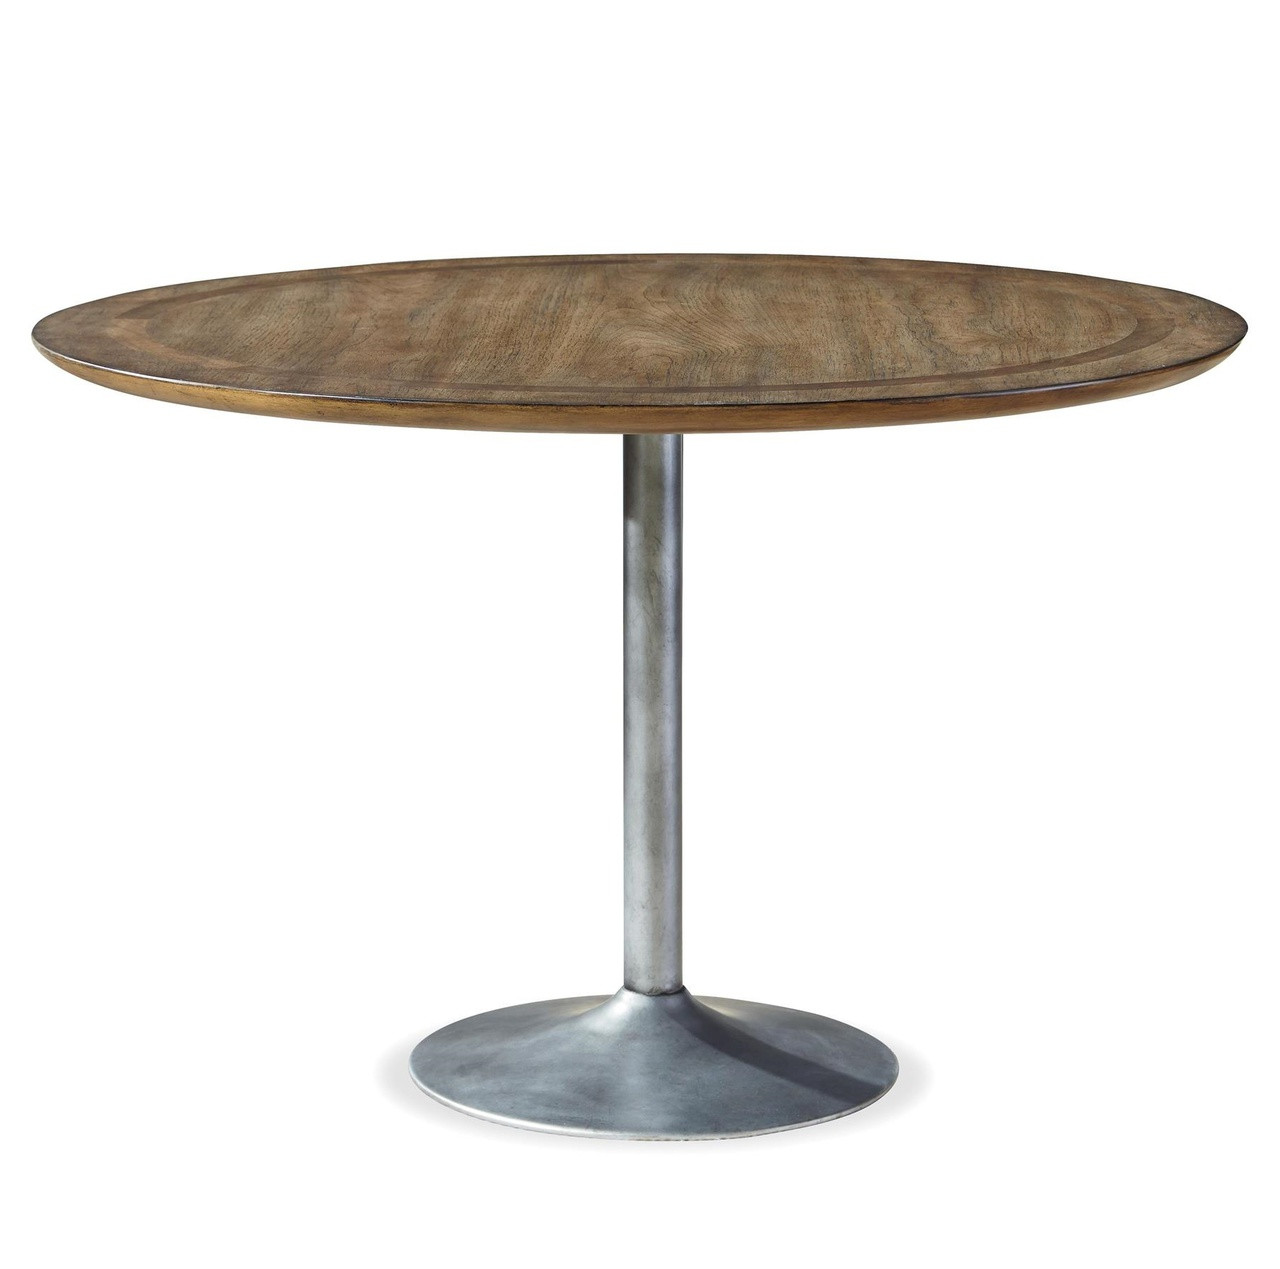 Maison Industrial Metal Pedestal Round Dining Table